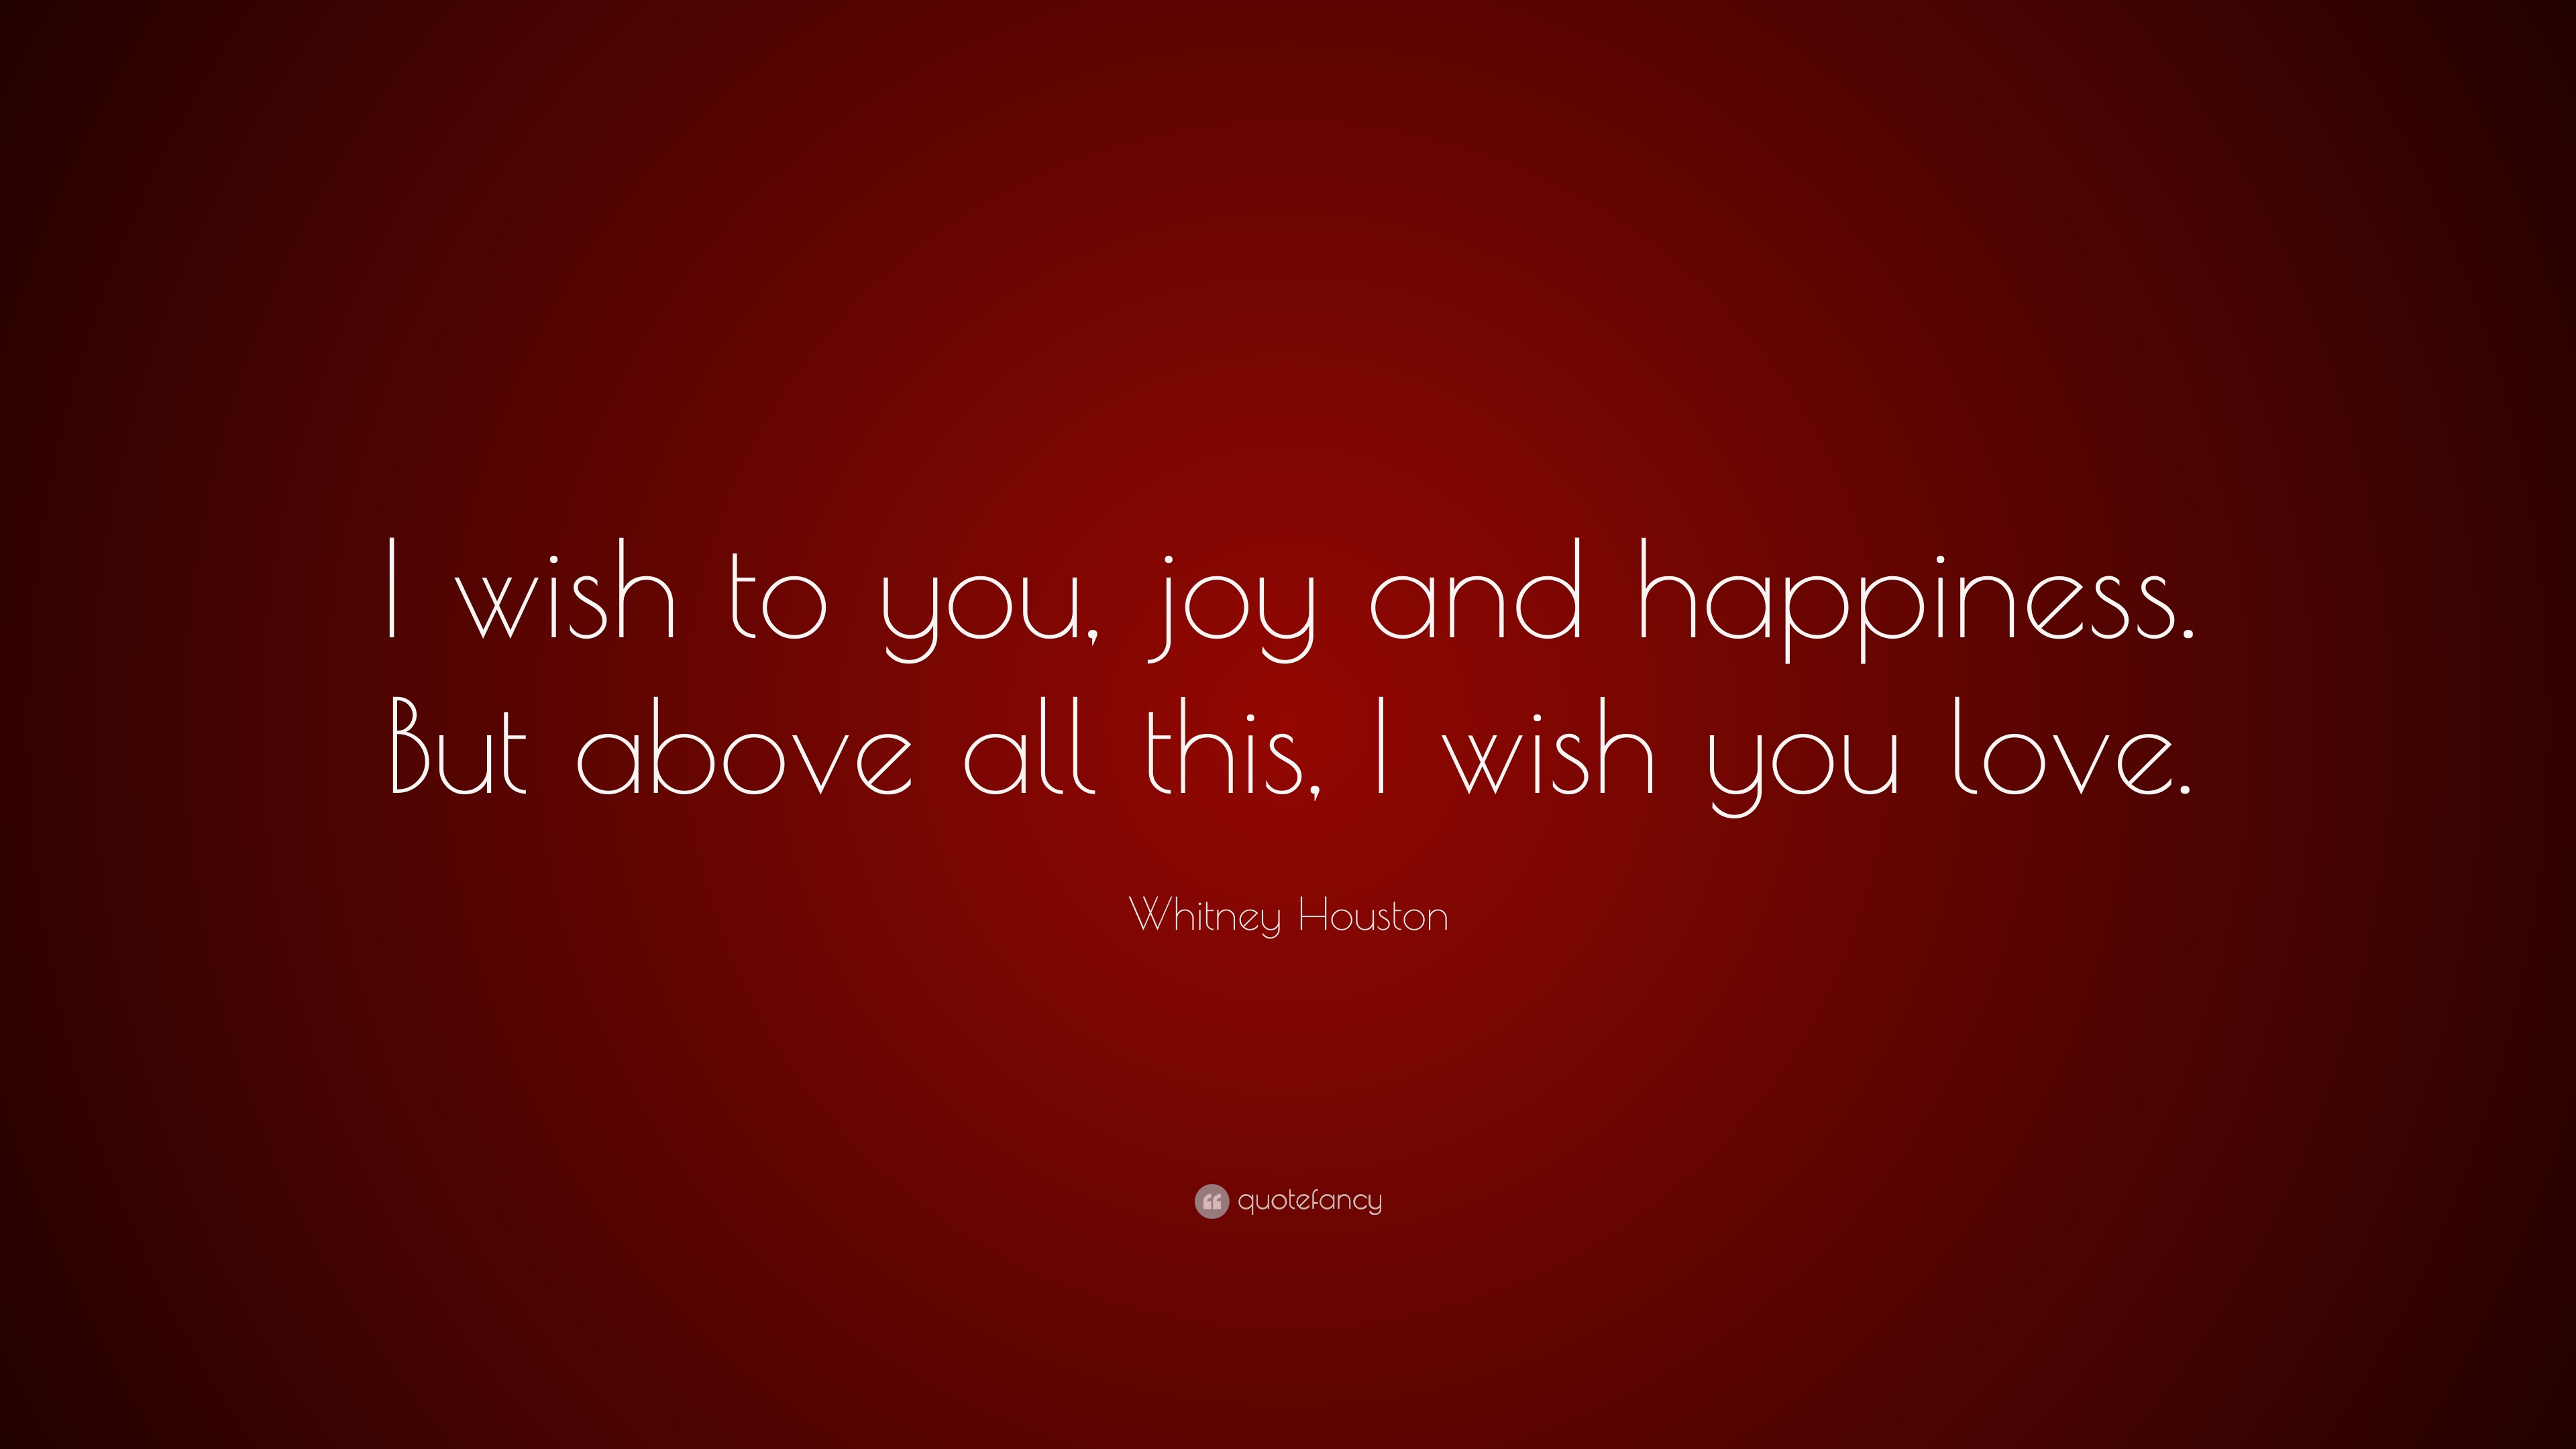 Whitney Houston Quote I Wish To You Joy And Happiness But Above